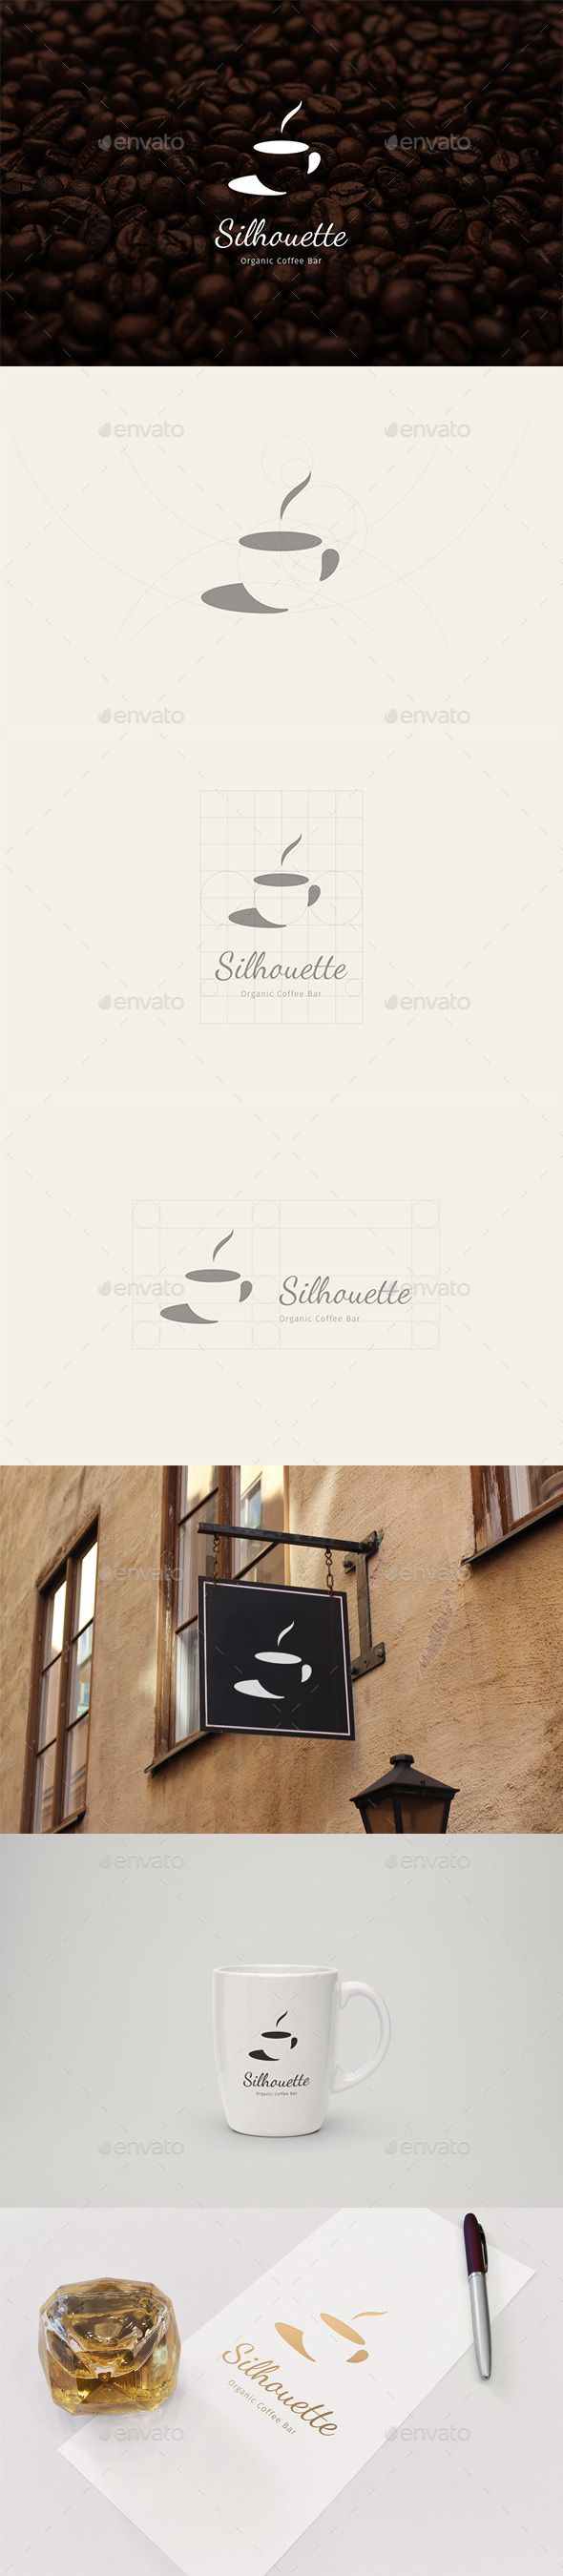 Silhouette Organic Coffee Bar Logo — Vector EPS #branding #simple • Available here → https://graphicriver.net/item/silhouette-organic-coffee-bar-logo/14910433?ref=pxcr